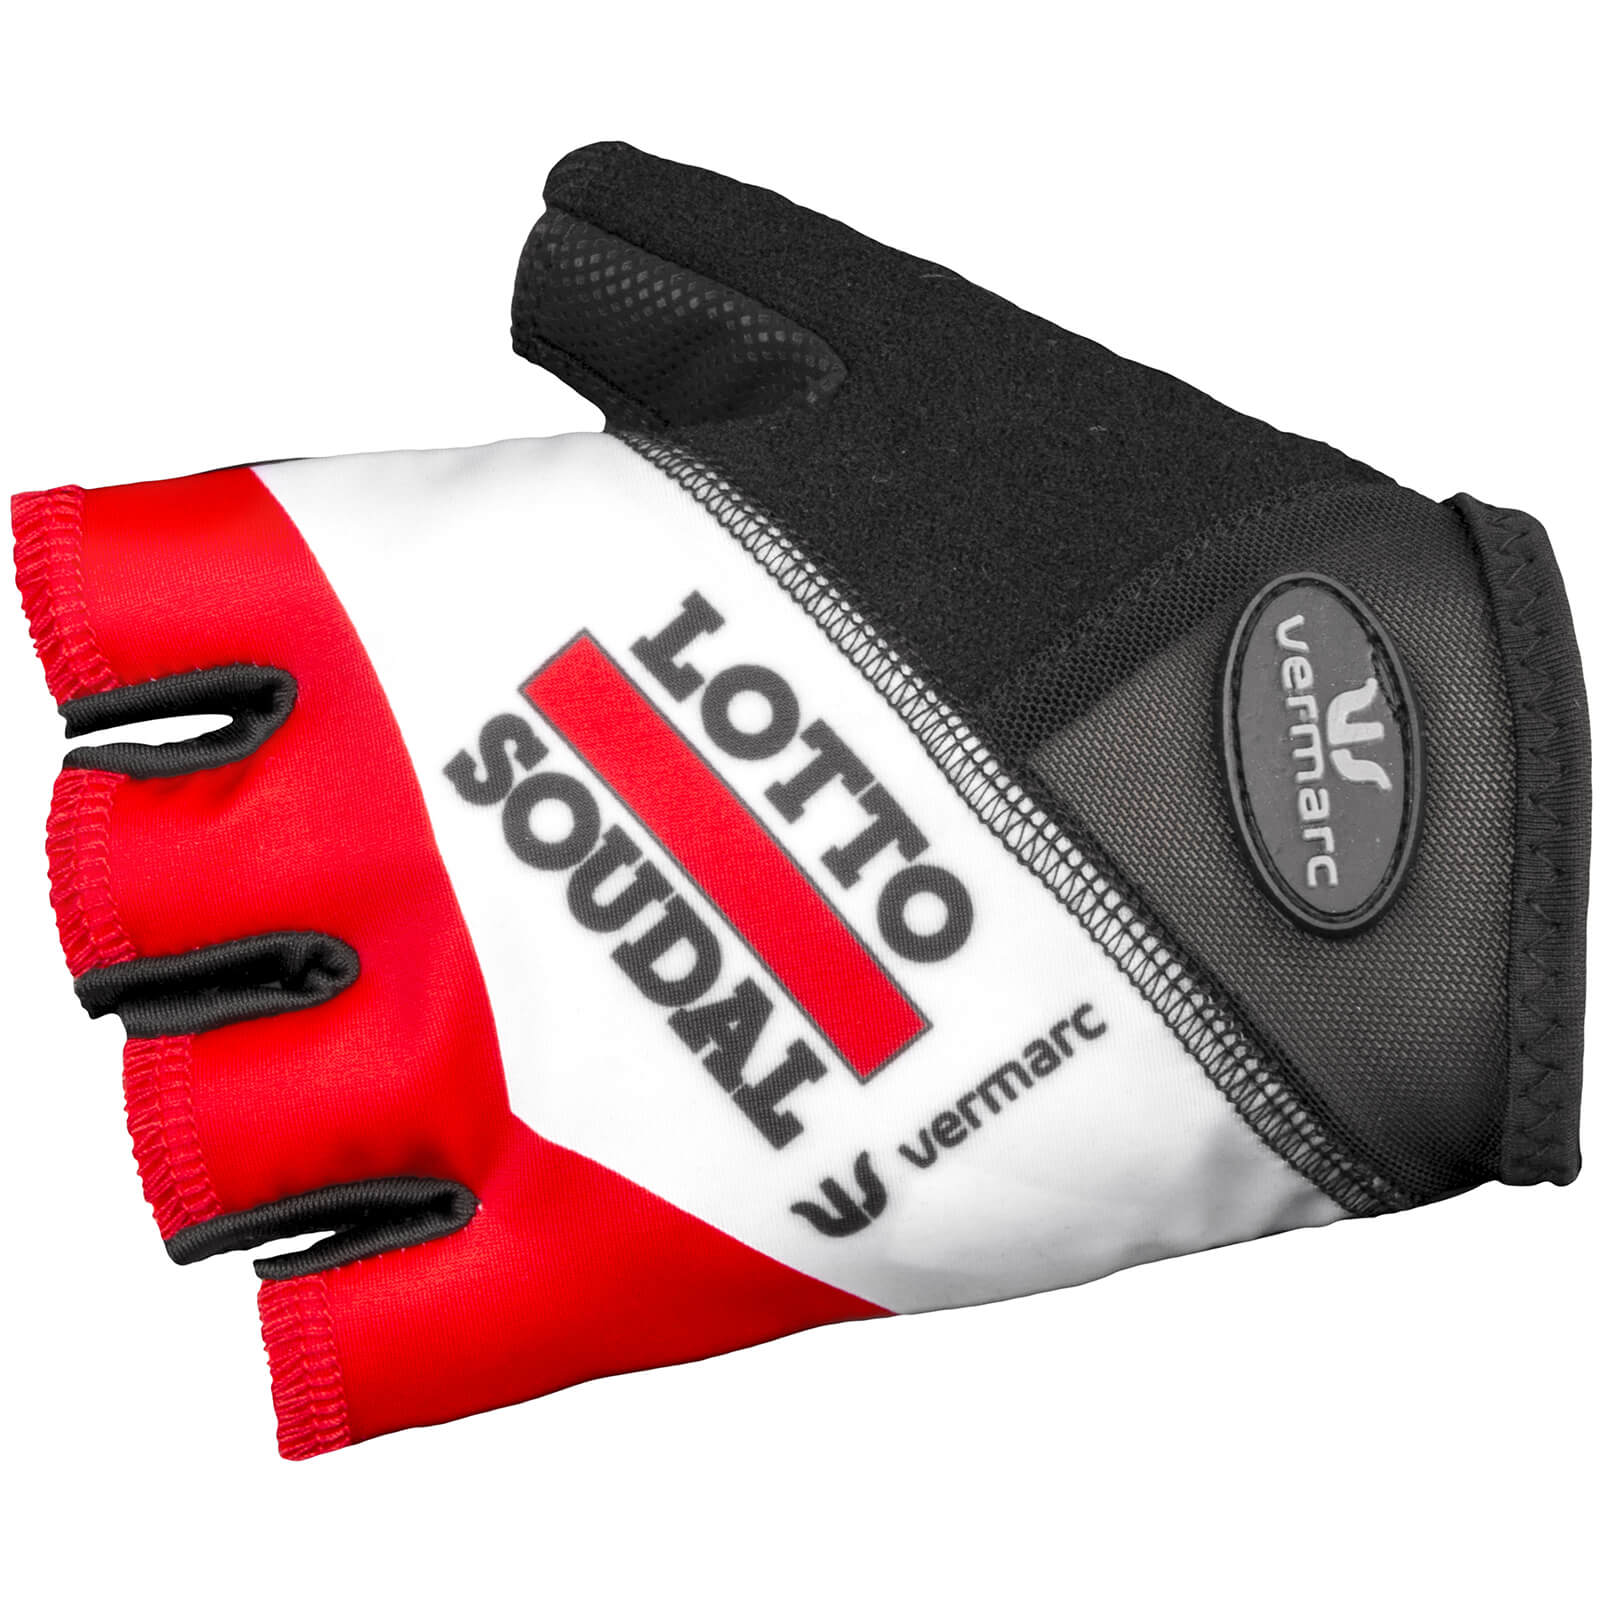 Lotto Soudal Mitts